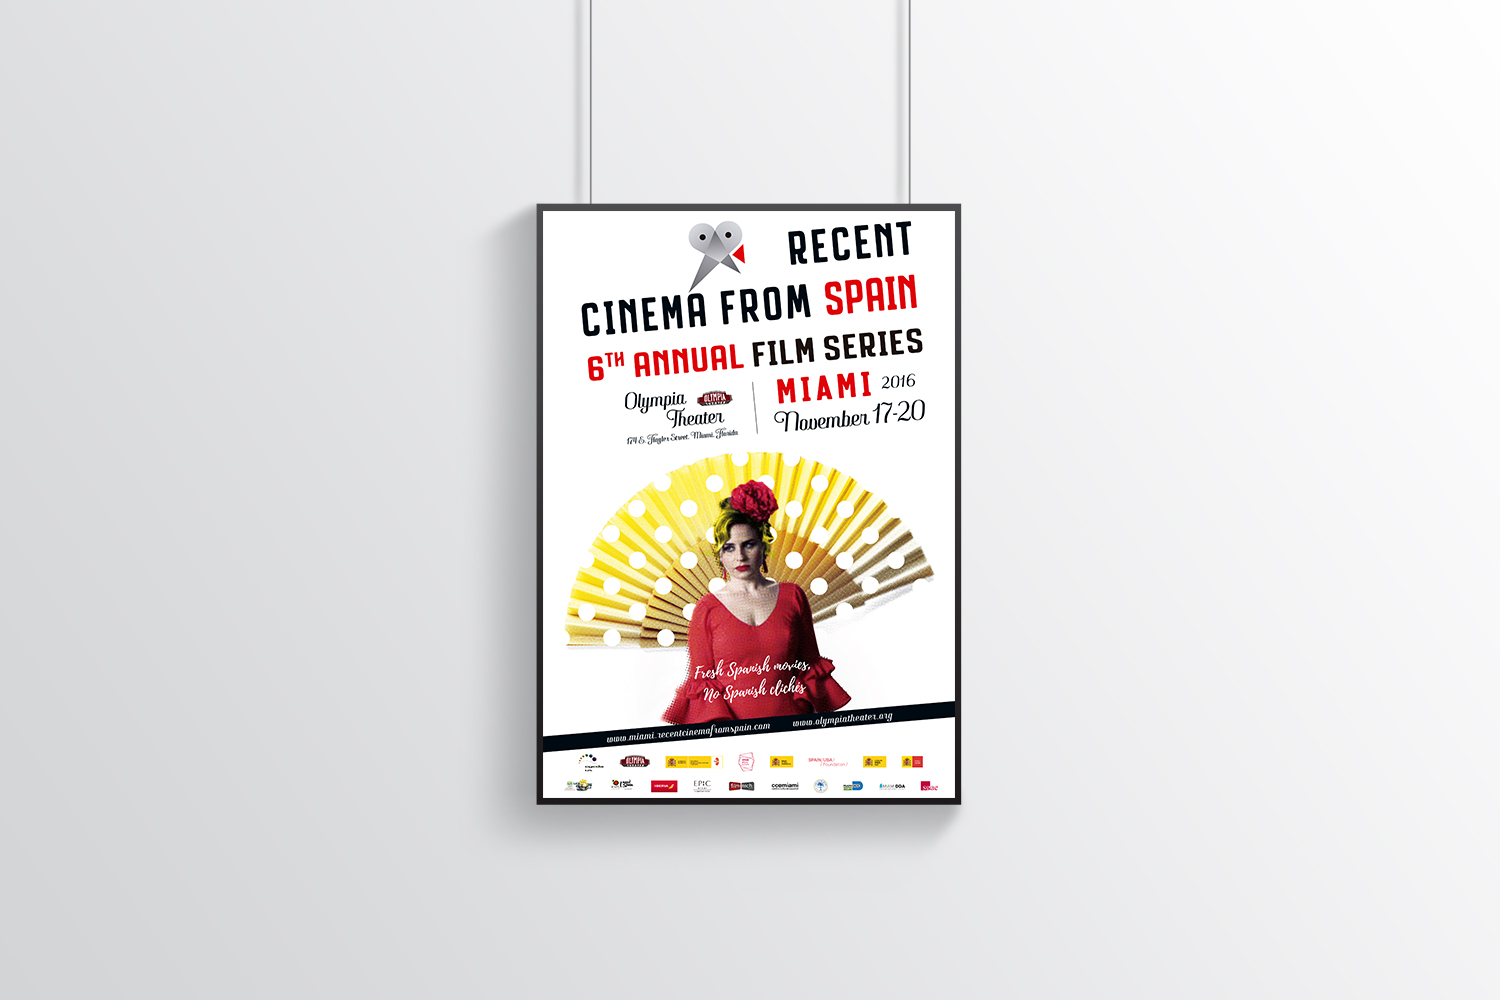 6th Recent Cinema from Spain